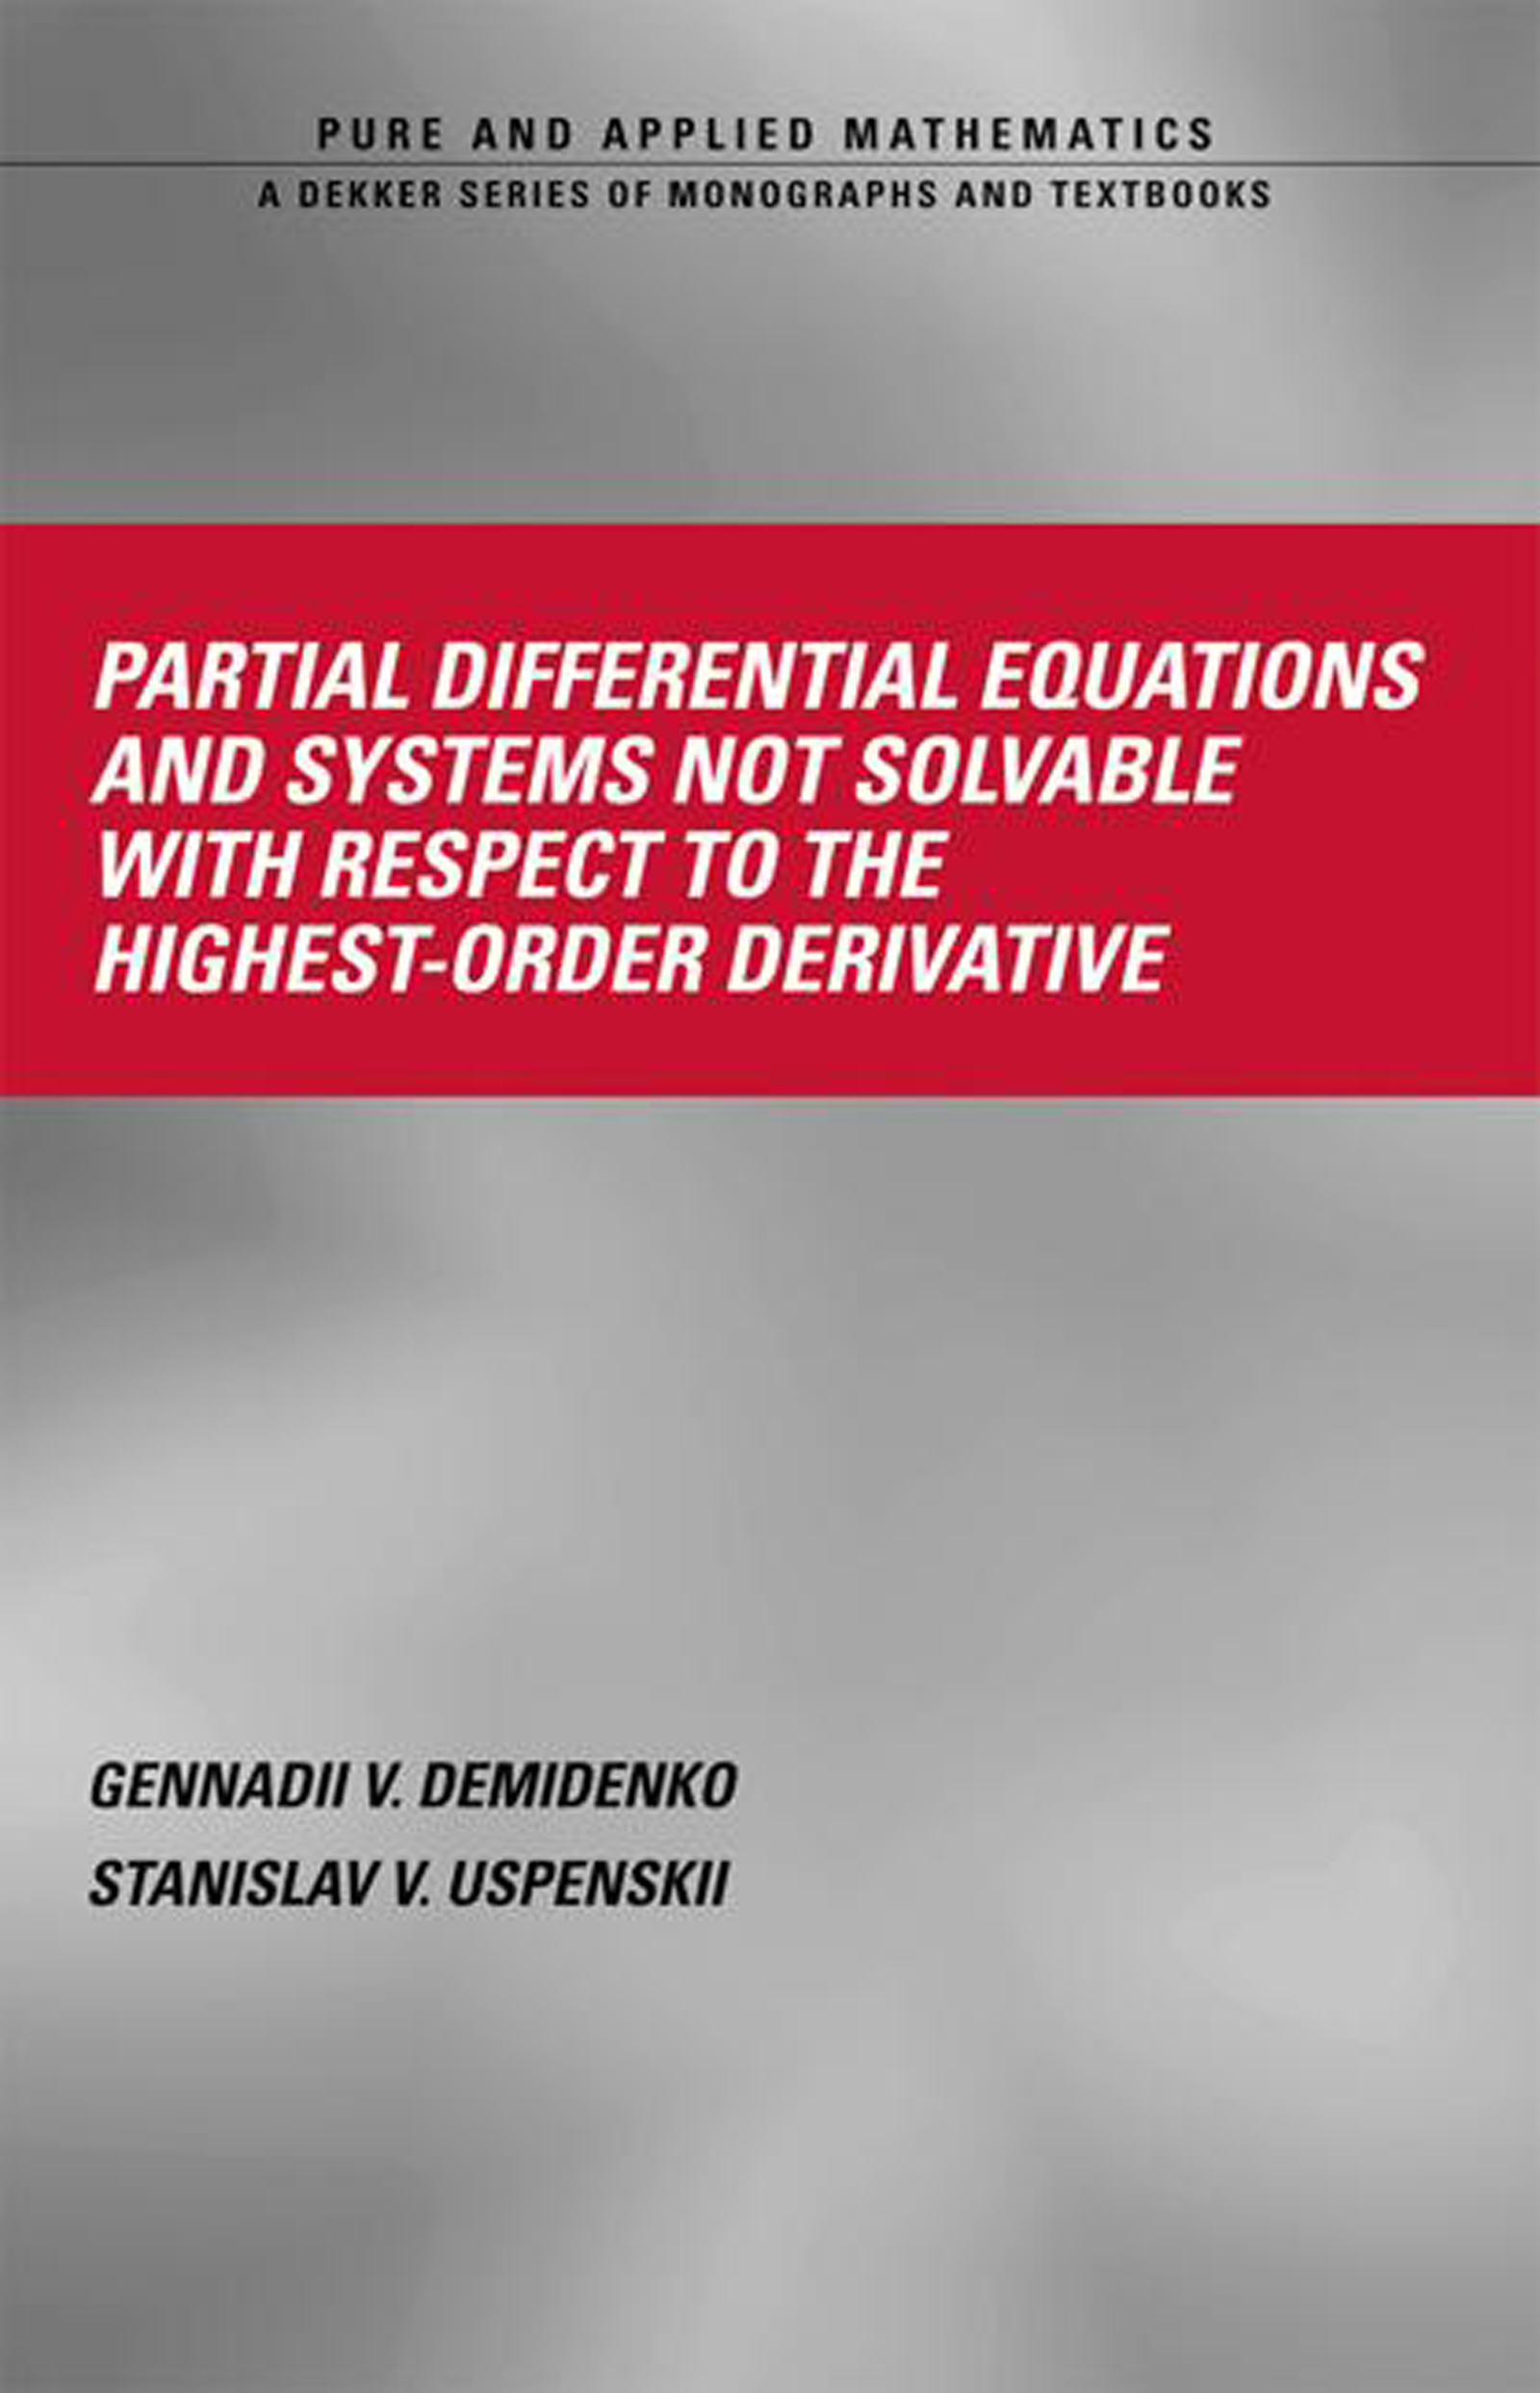 Partial Differential Equations And Systems Not Solvable With Respect To The Highest-Order Derivative: 1st Edition (Hardback) book cover